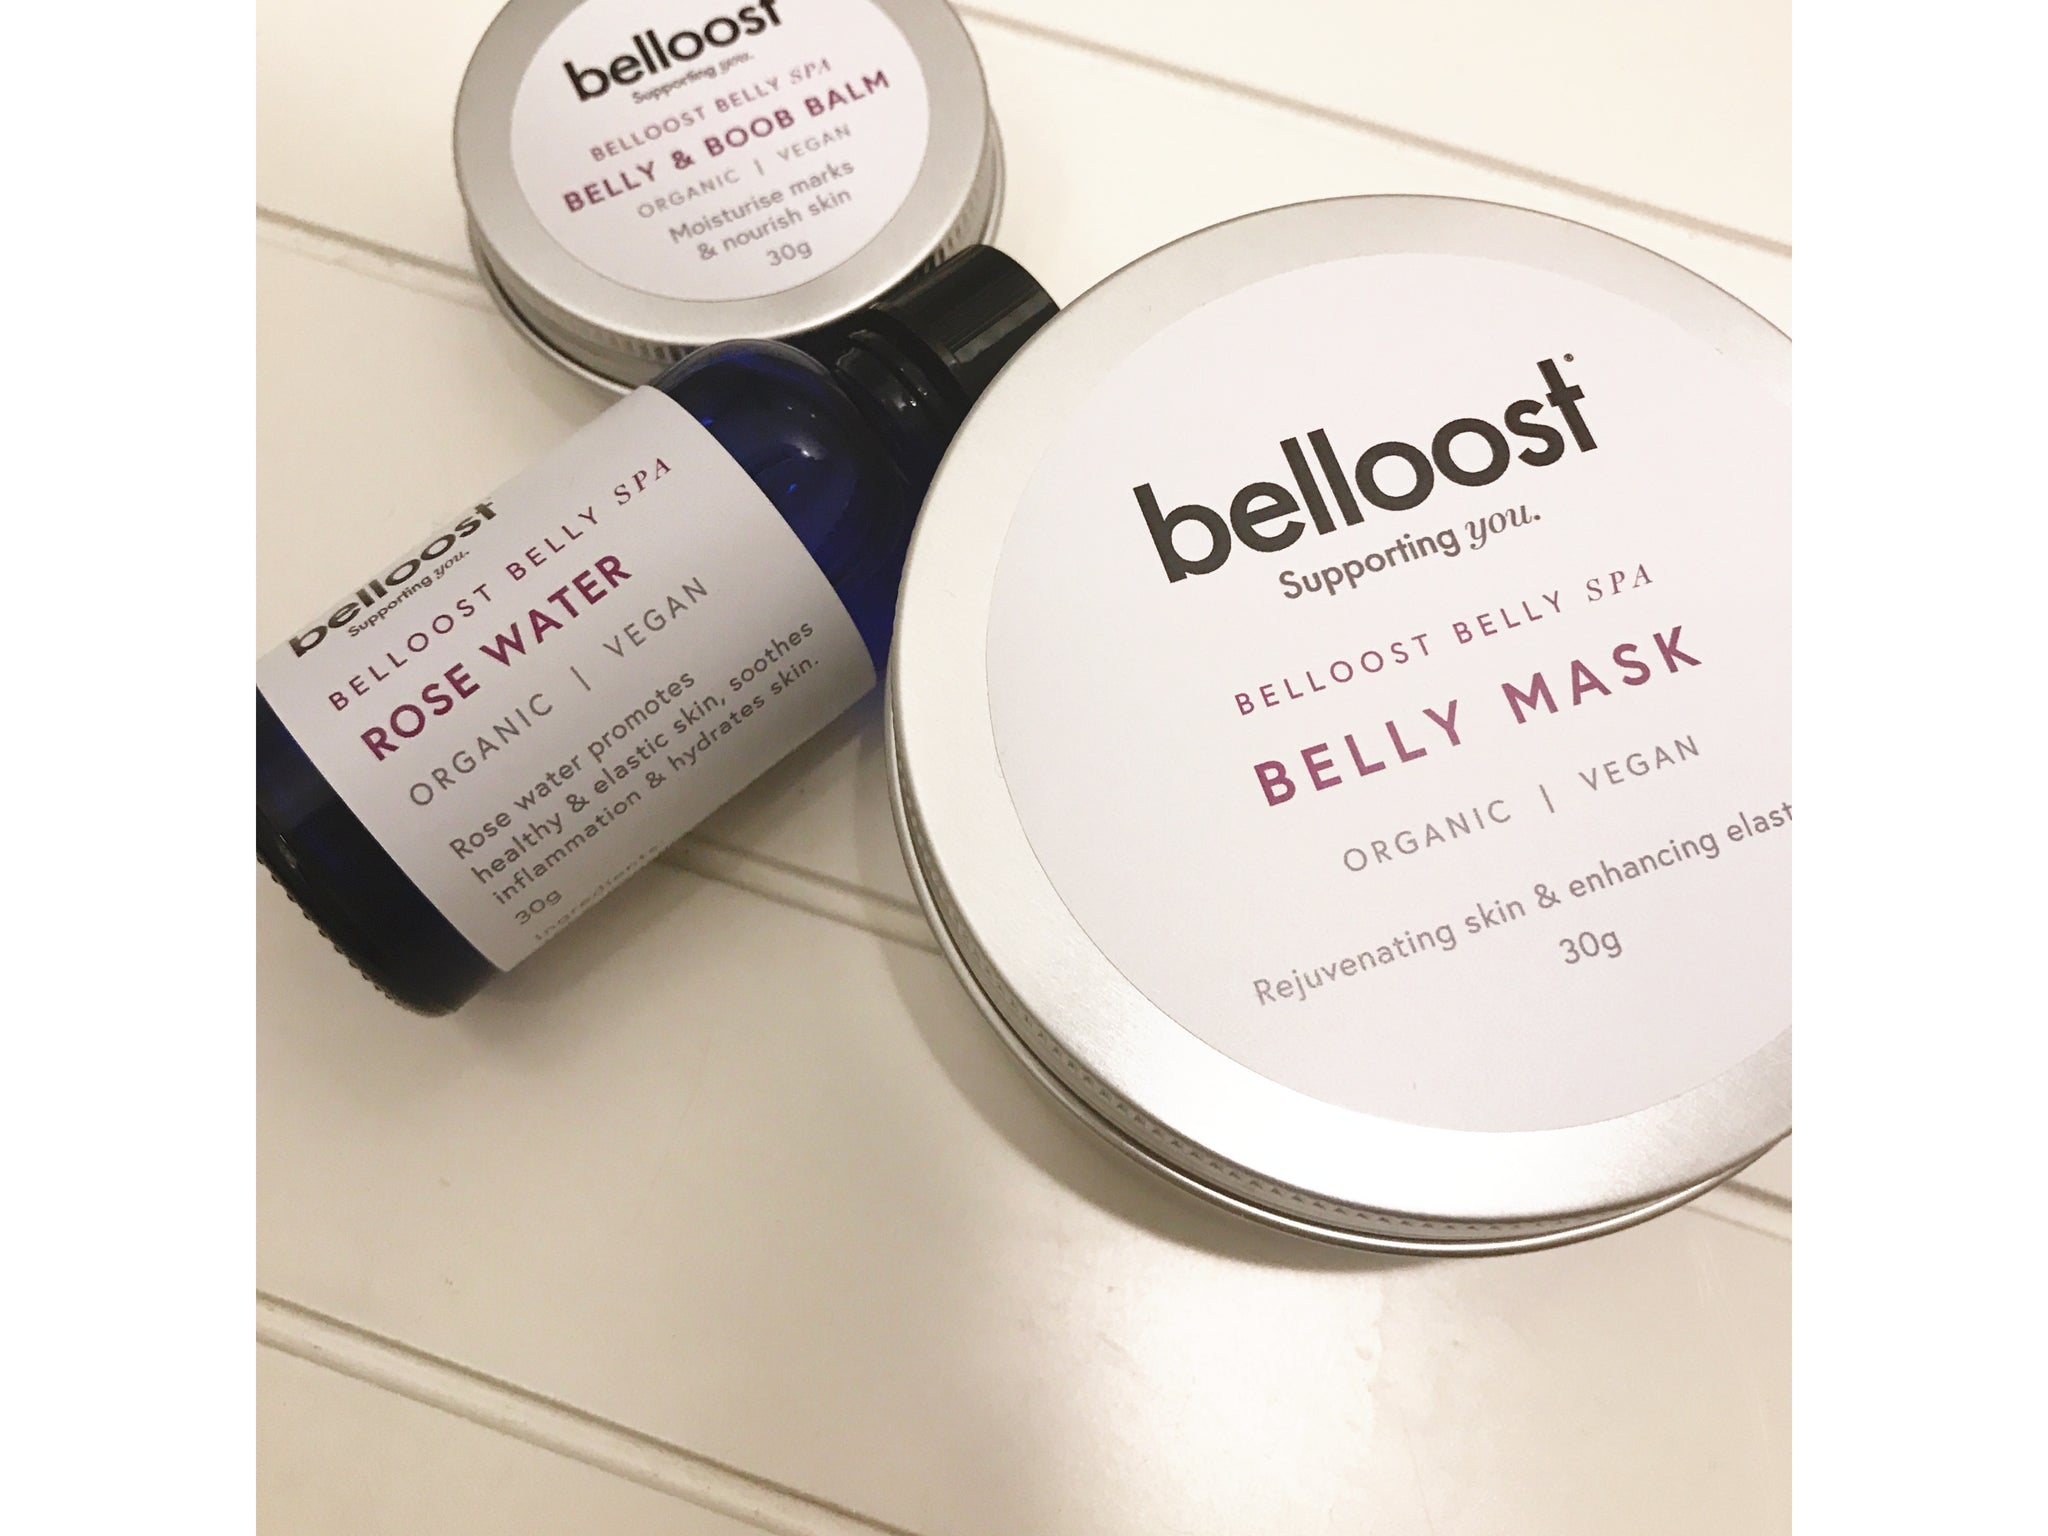 Belloost® Belly Spa Kit